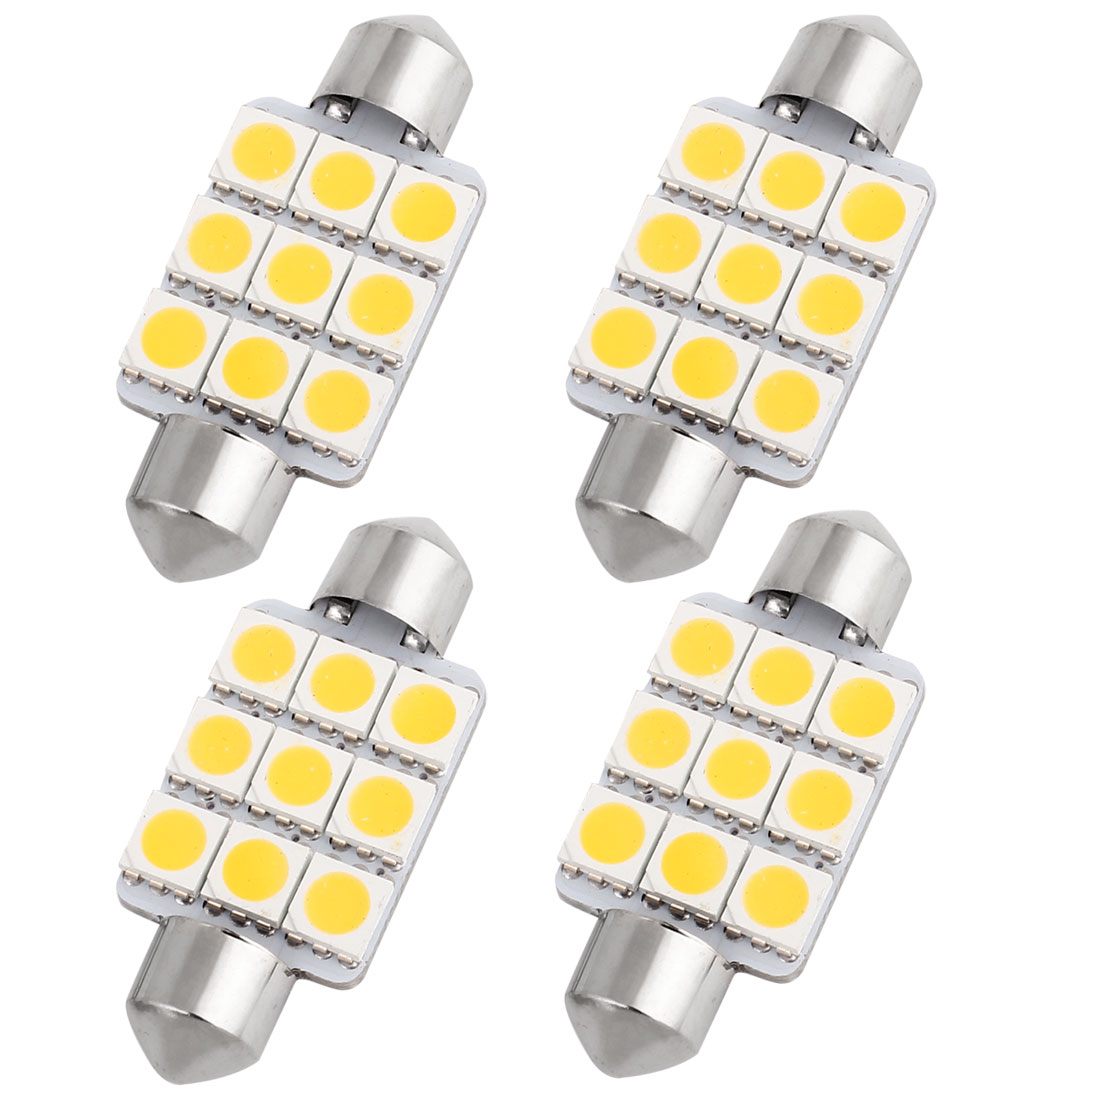 "4 Pcs 39mm 1.54"" 5050 SMD 9-LED Warm White Festoon Dome Light Bulb DE3425 DE3423 Internal"